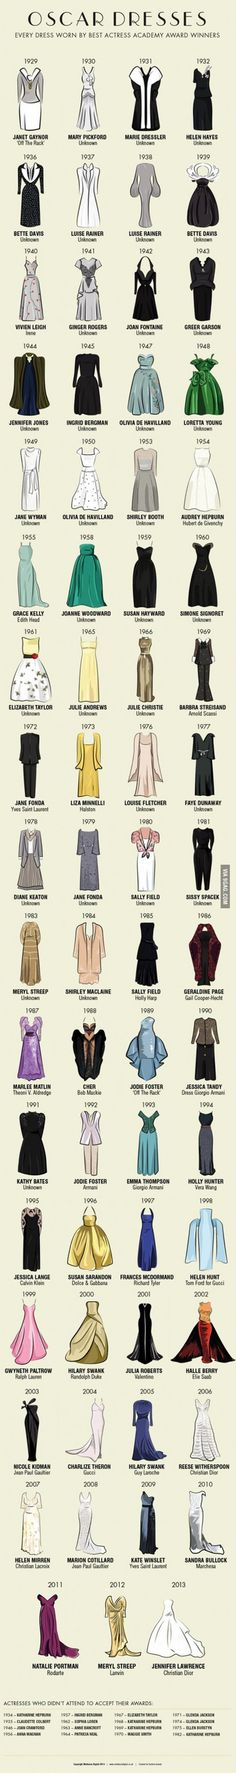 Every Dress Worn by Best Actress Oscar Winners, Although it is not essential Art Deco but interesting. Fashion 101, Fashion History, Fashion Models, Style Fashion, Look Retro, Look Vintage, Best Actress Oscar, Vintage Outfits, Vintage Fashion